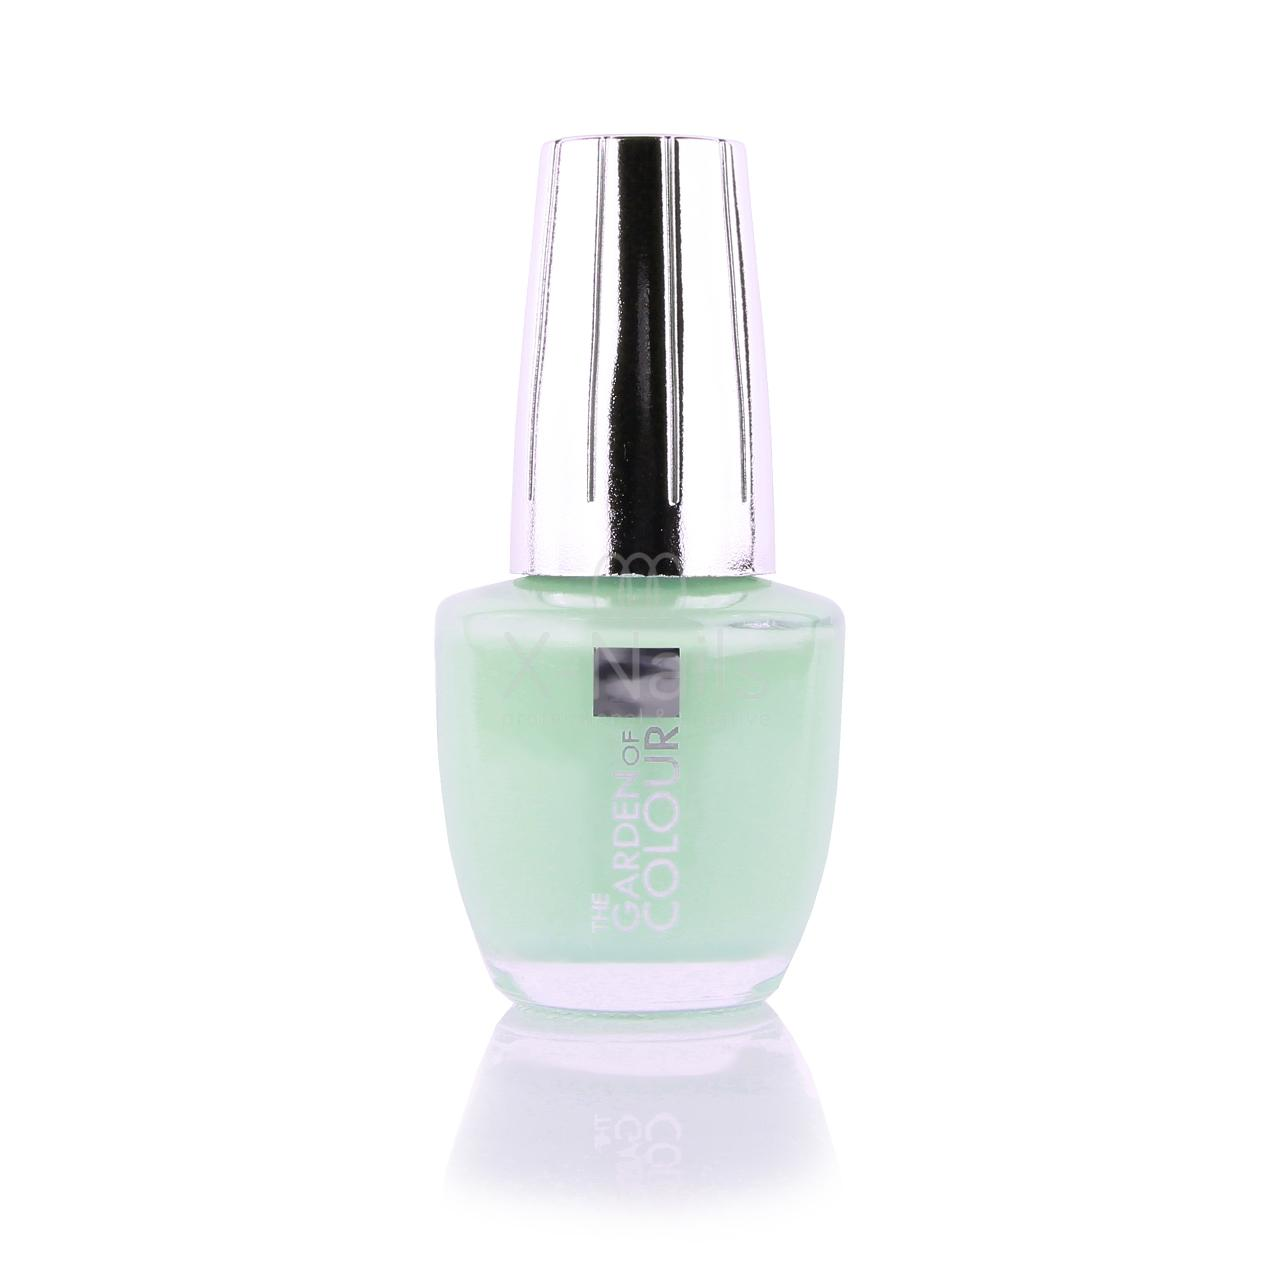 X-NAILS lak na nehty Color Line, 15 ml - LIGHT MINT, lesklý - 144